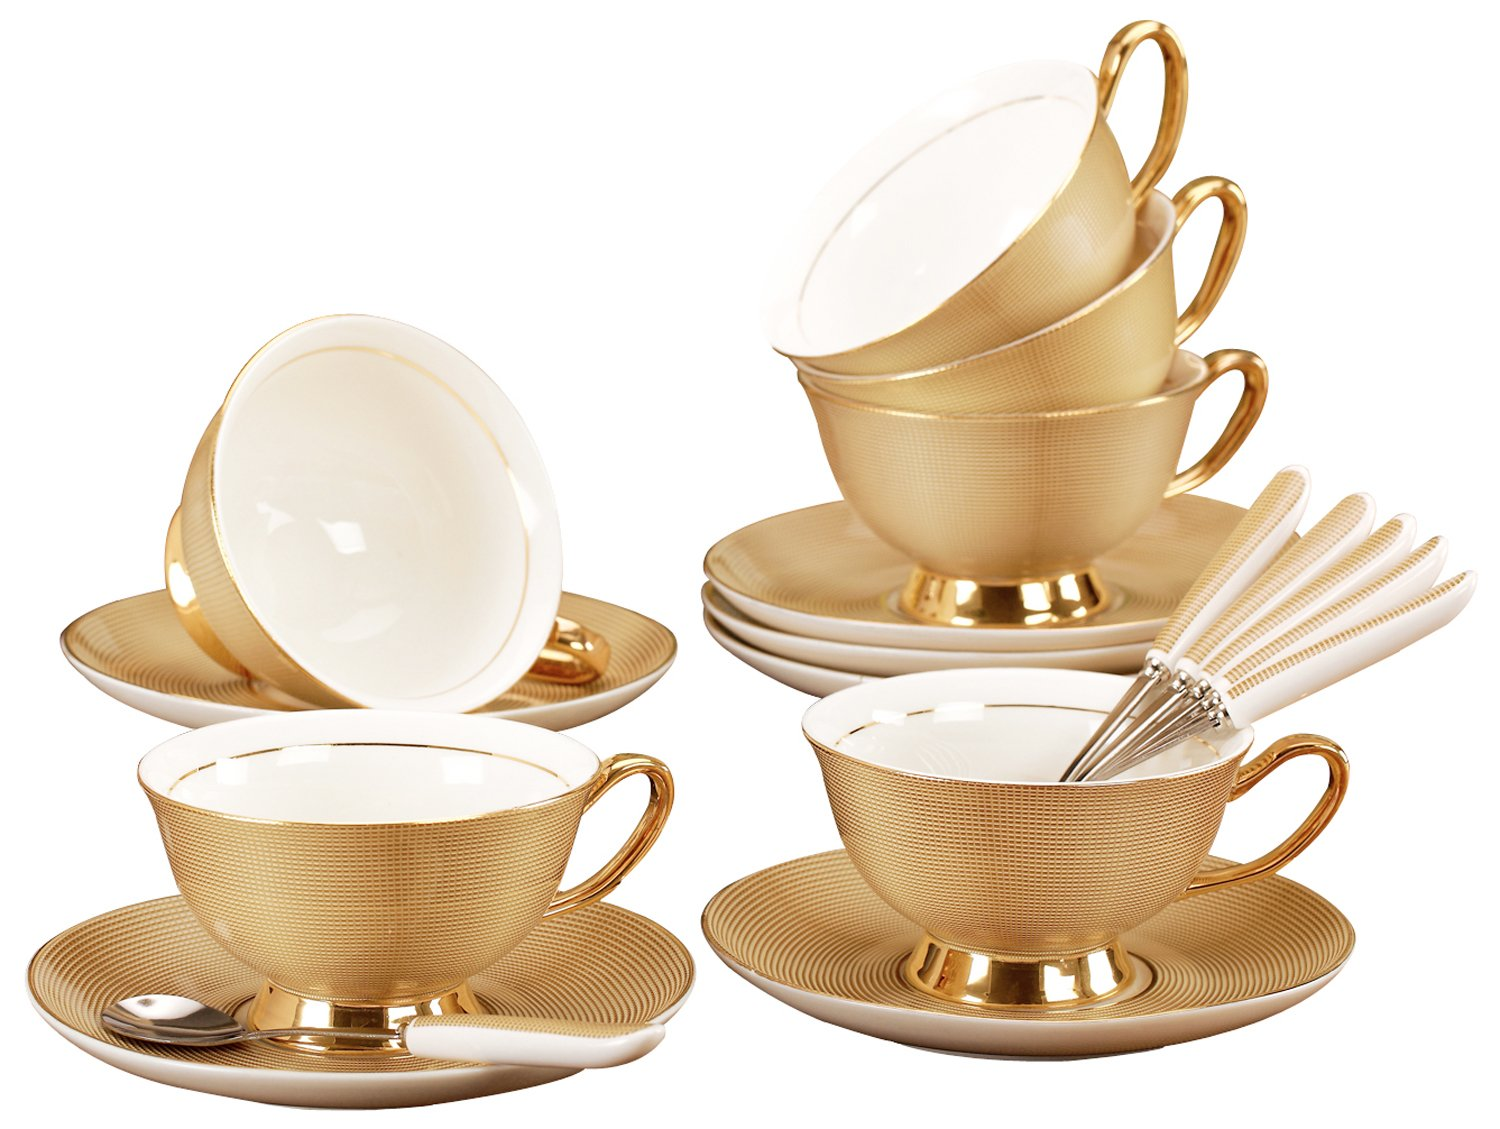 Jusalpha Fine China Tea Cup and Saucer Coffee Cup Set with Spoon FD-TCS09 (Set of 6)